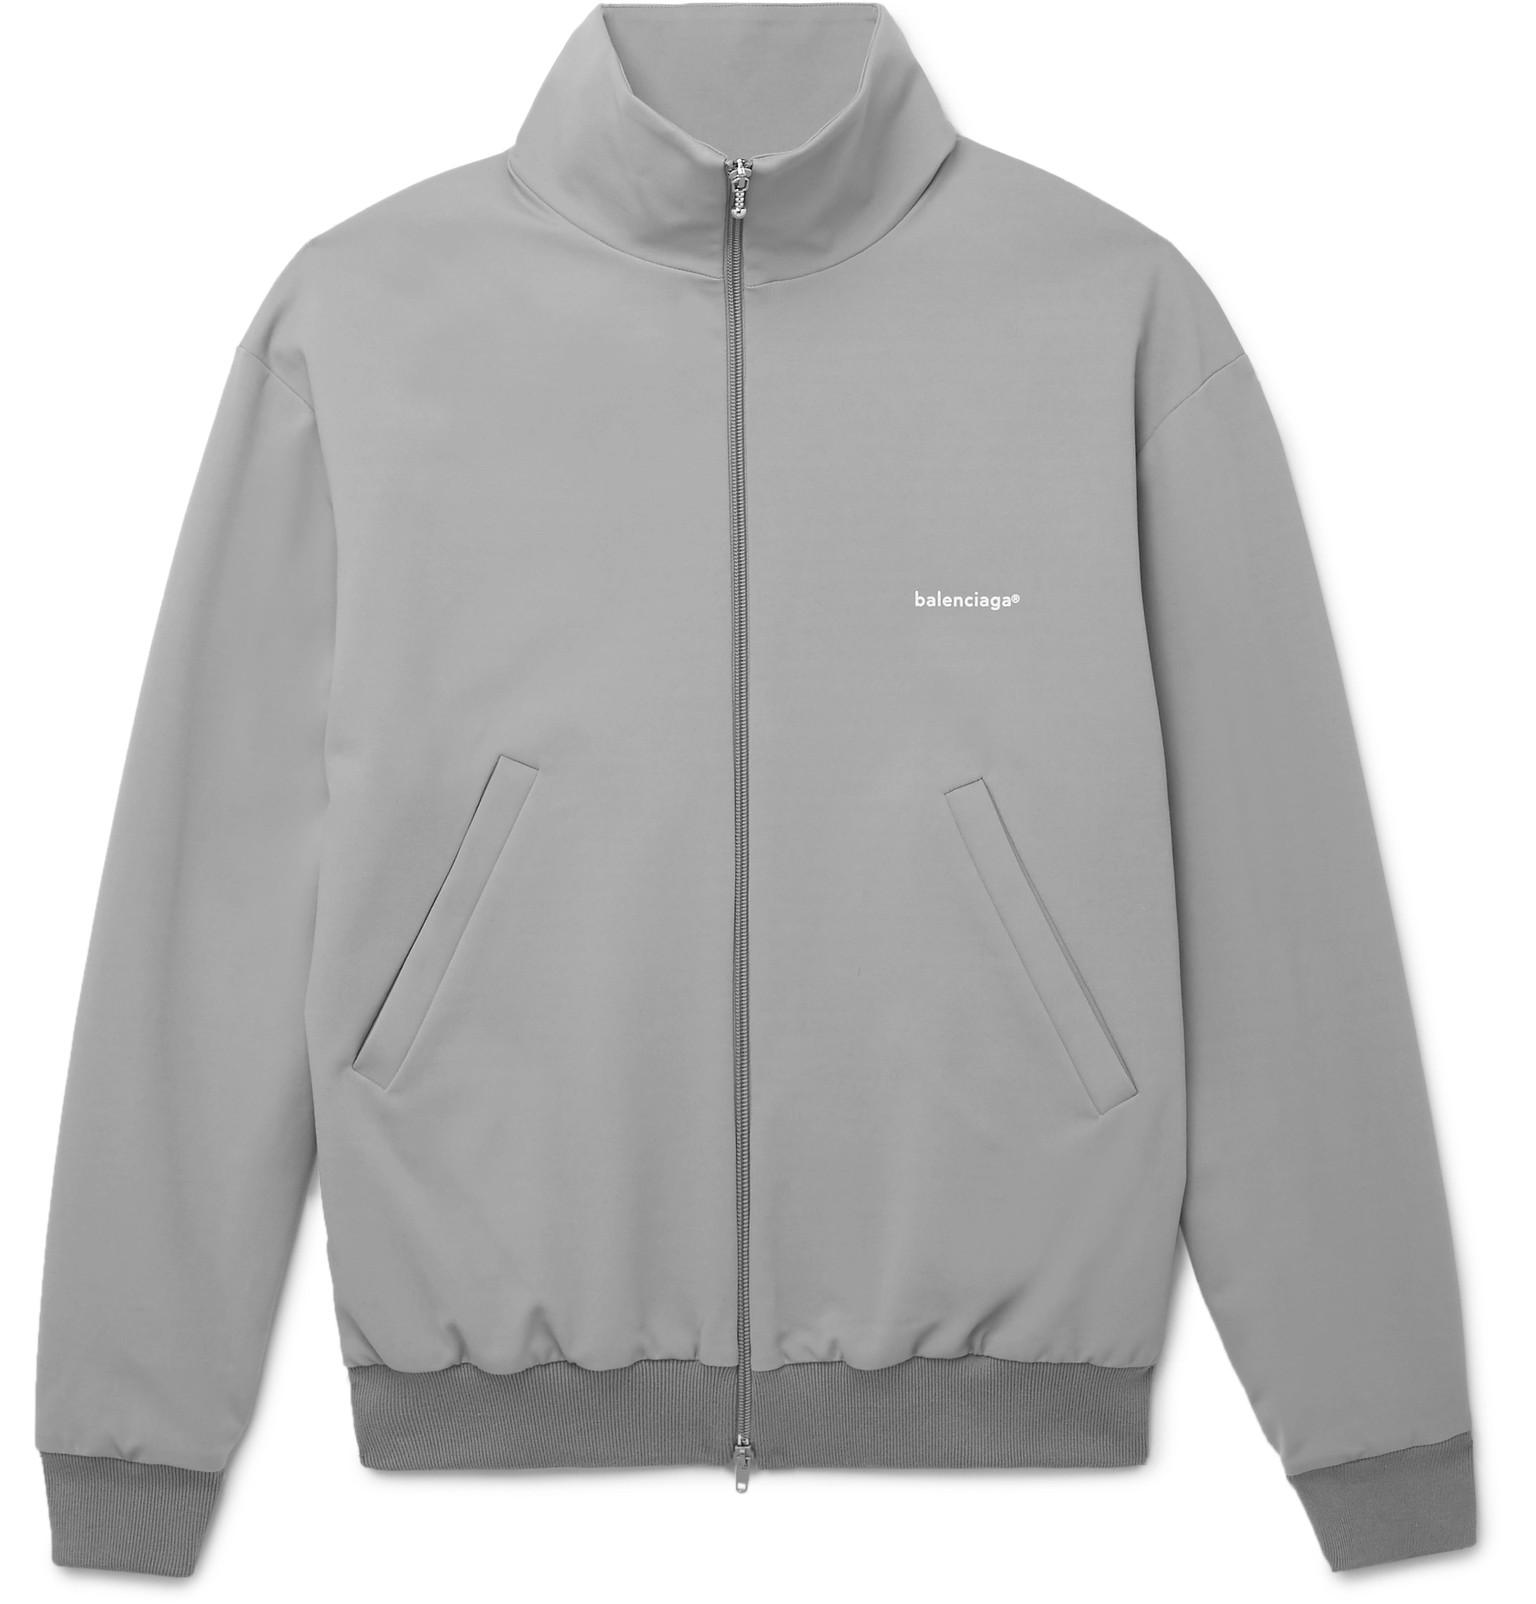 Outlet Real Outlet Fast Delivery Jersey Track Jacket Balenciaga Cheap Price For Sale Sale Fake hJlgD